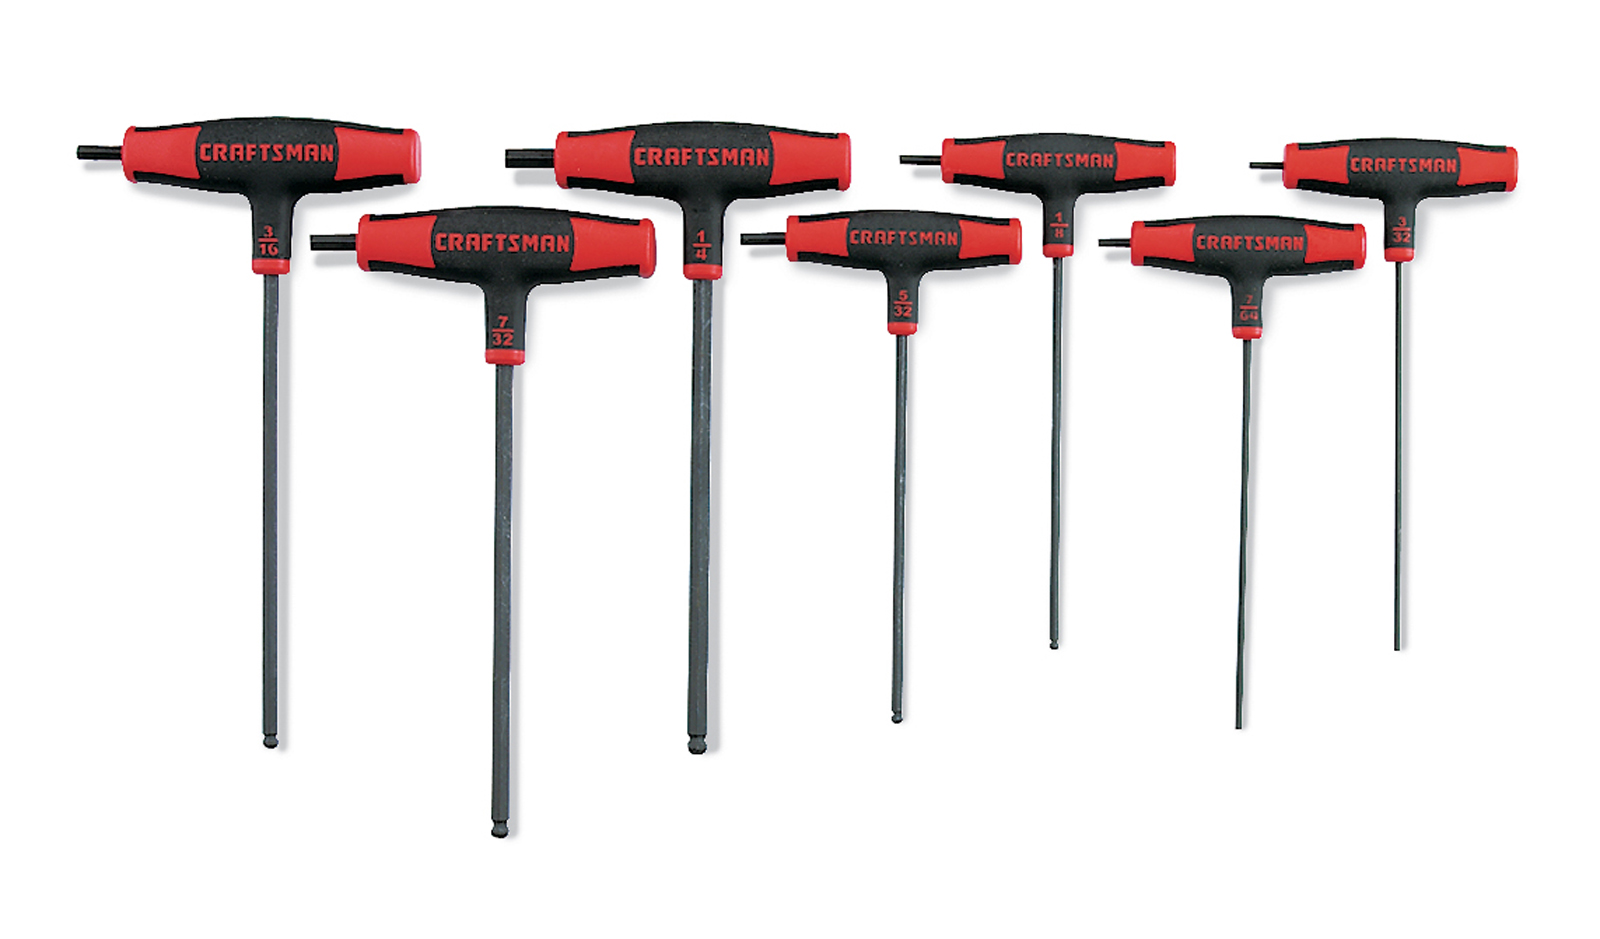 Craftsman 7 pc. Standard T-Through Handle Ball End Hex Key Set